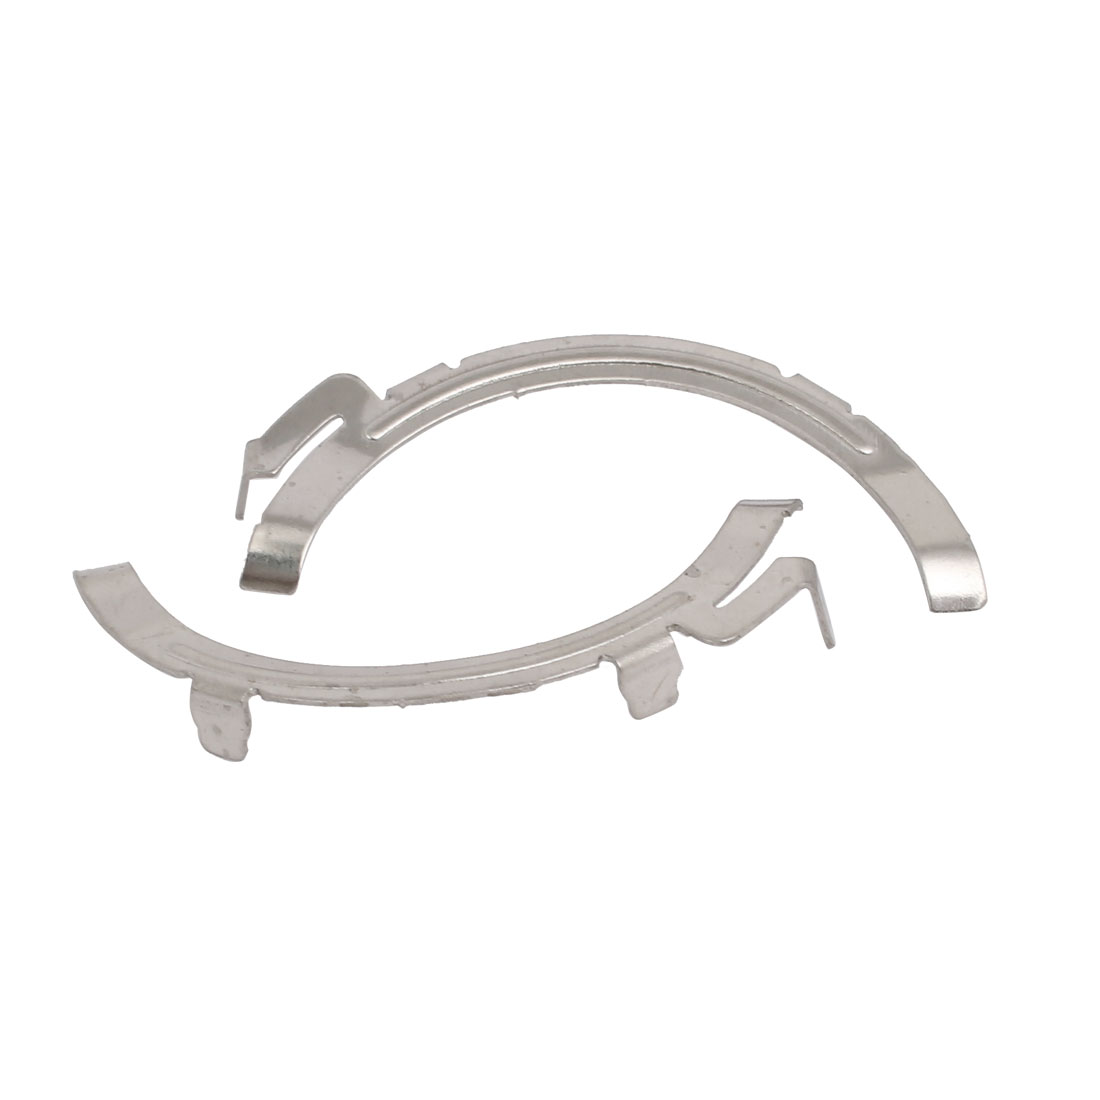 Power Tool Fitting Support Gasket Silver Tone for Bosch GBH2-22D/DE Hammer Drill